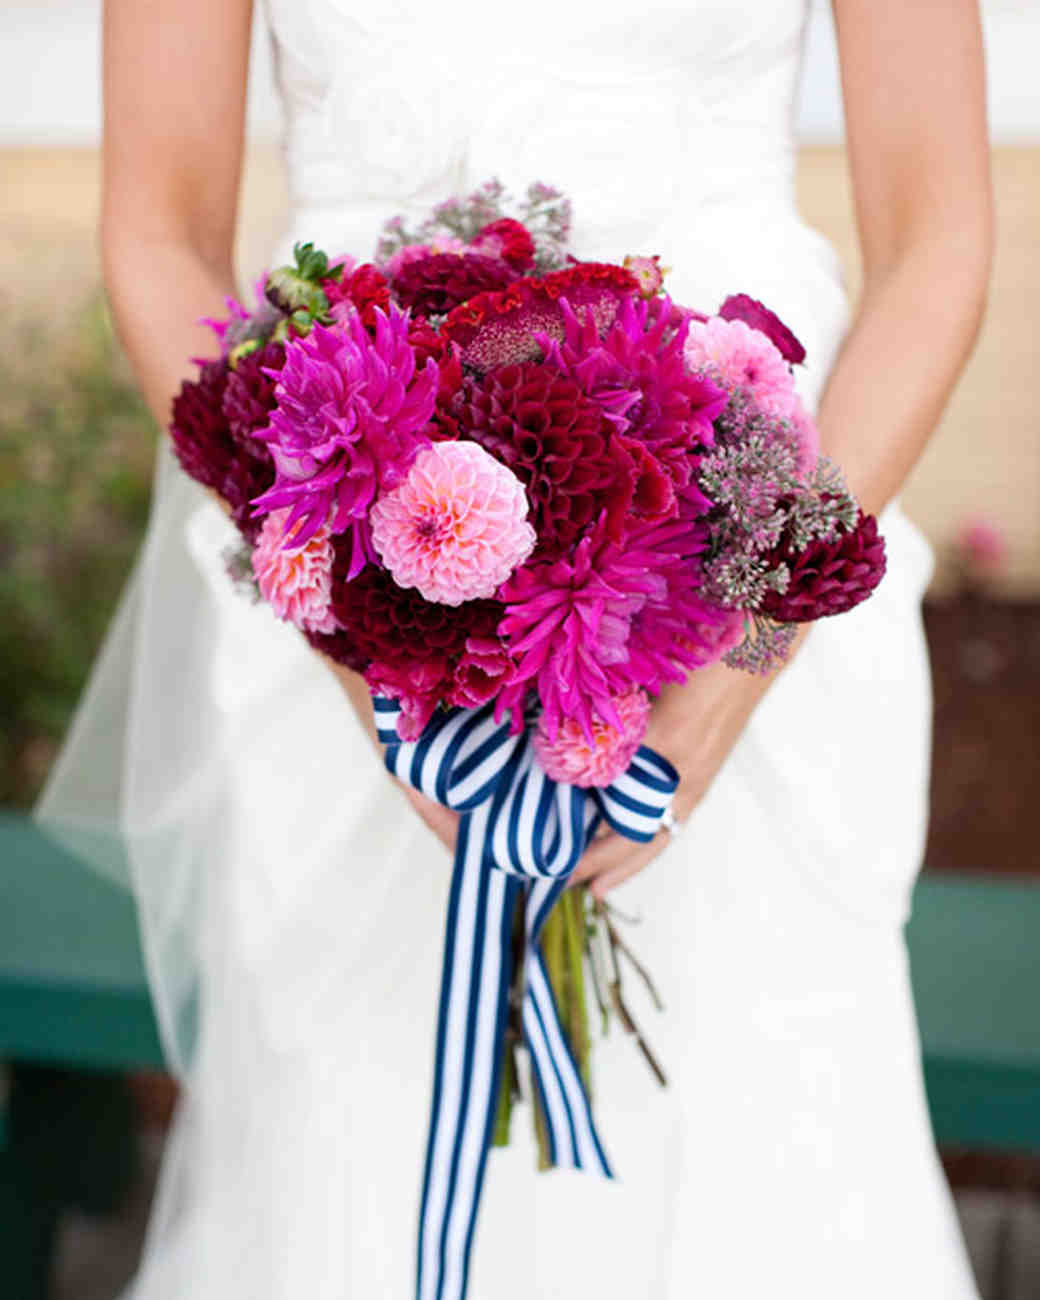 Hot Pink Bridal Bouquet with Navy and White Striped Bow